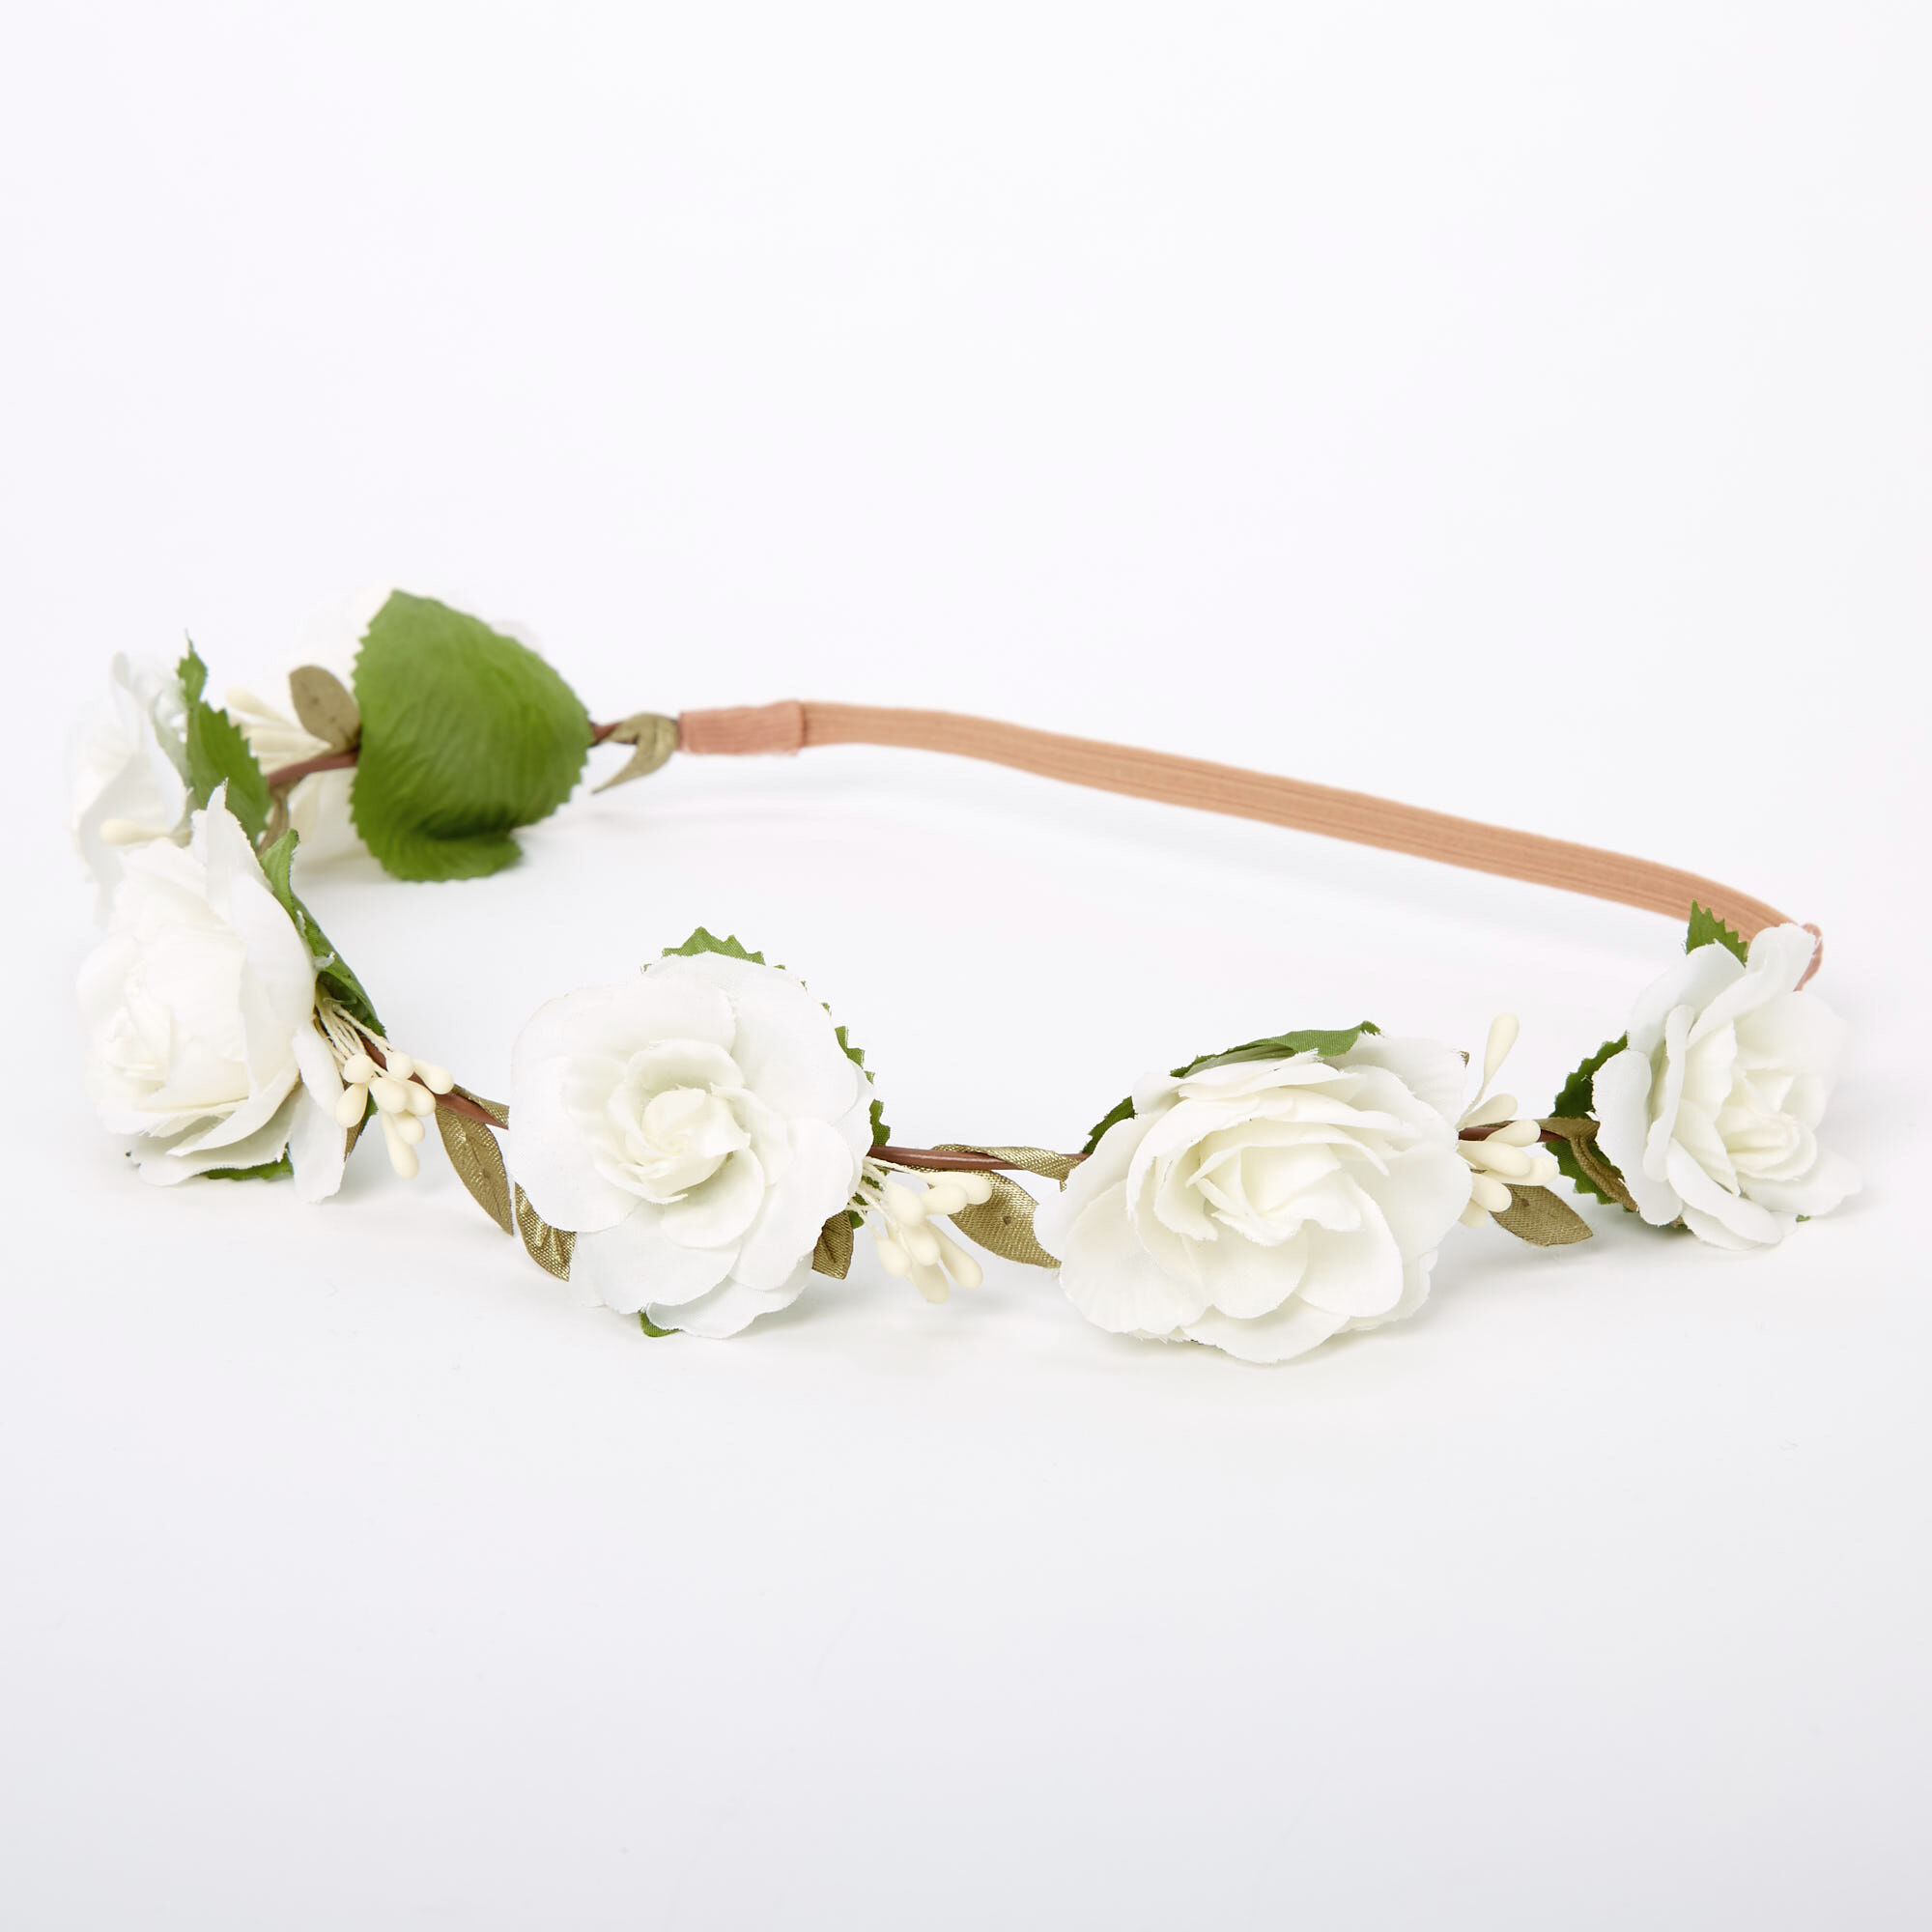 PINK OR WHITE ROSE FLOWER ELASTIC HEADBAND HEADWRAP